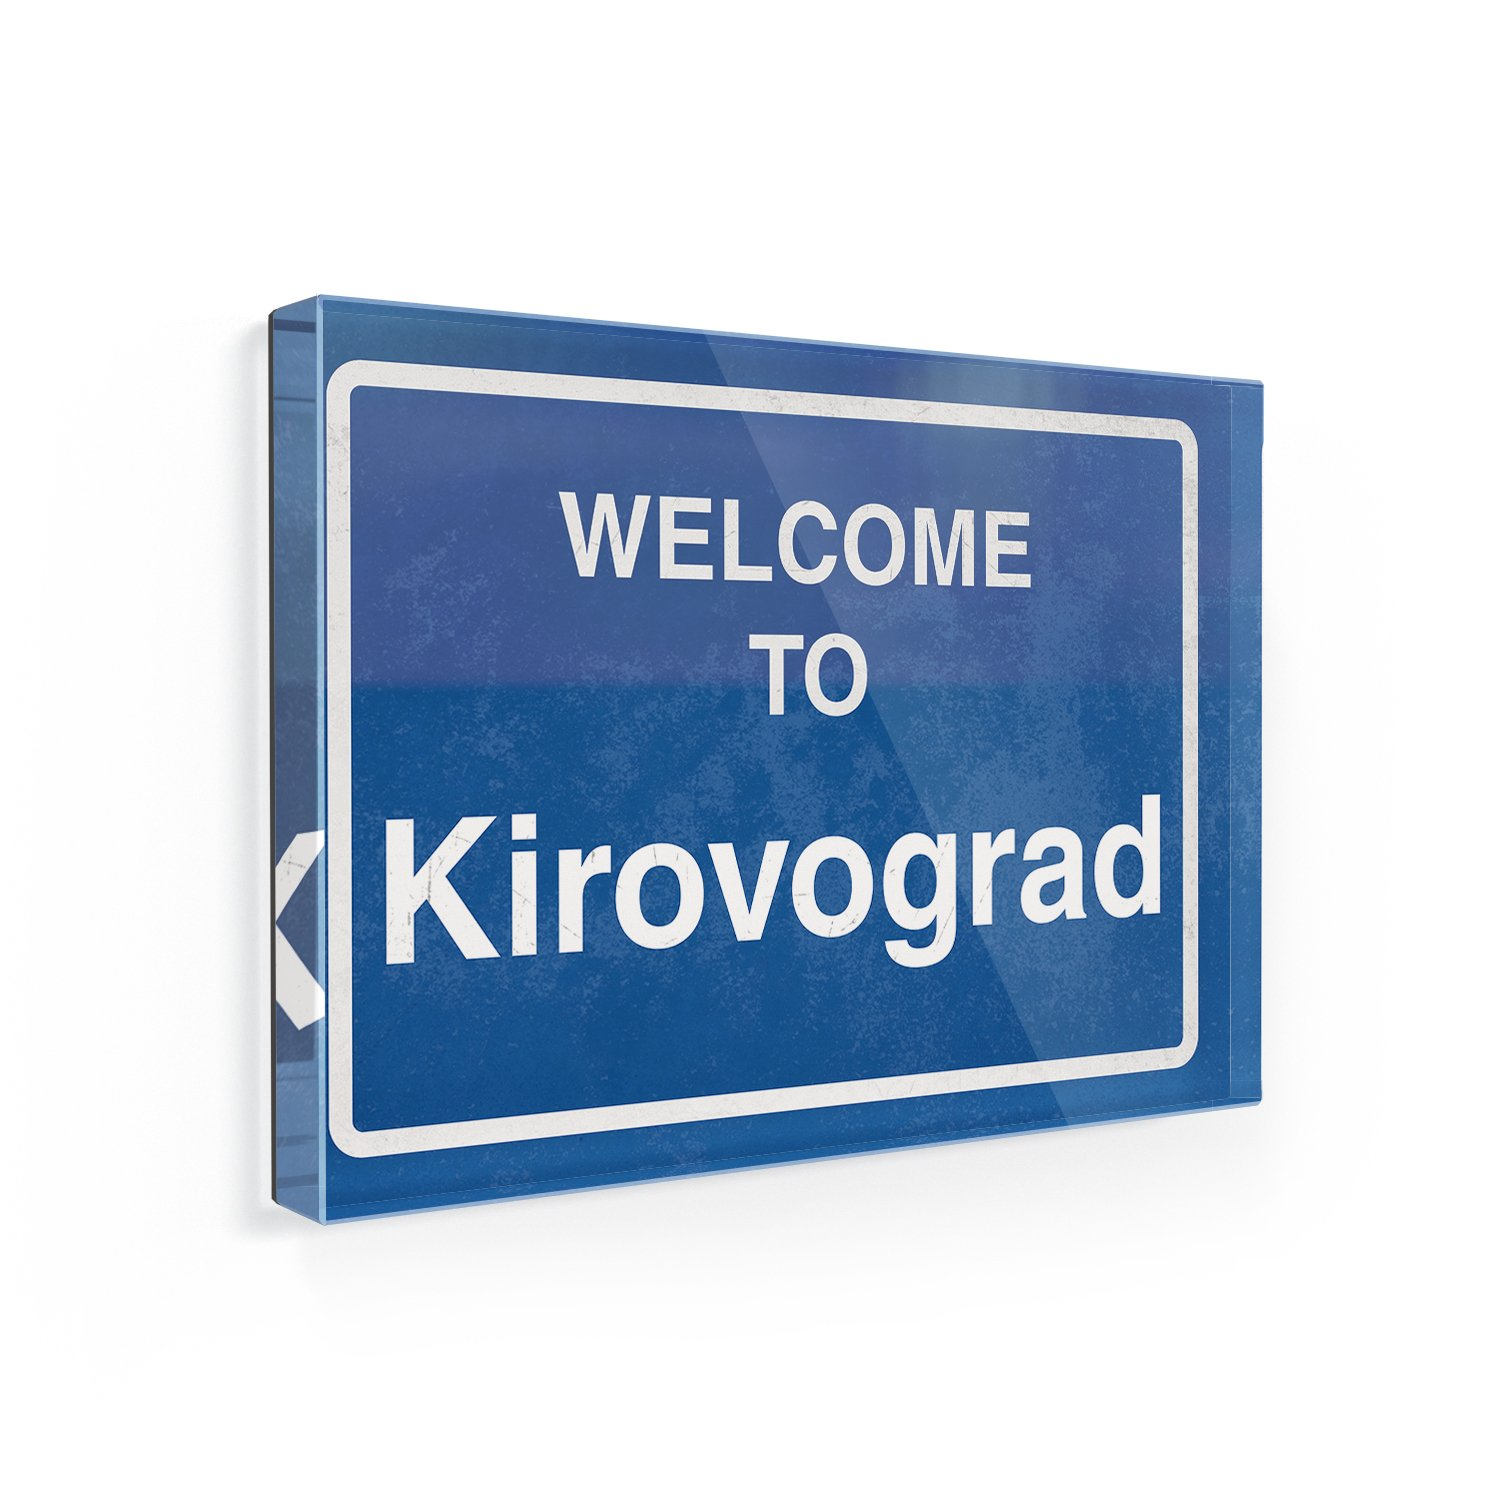 Dry cleaners of Kirovograd and region: a selection of sites